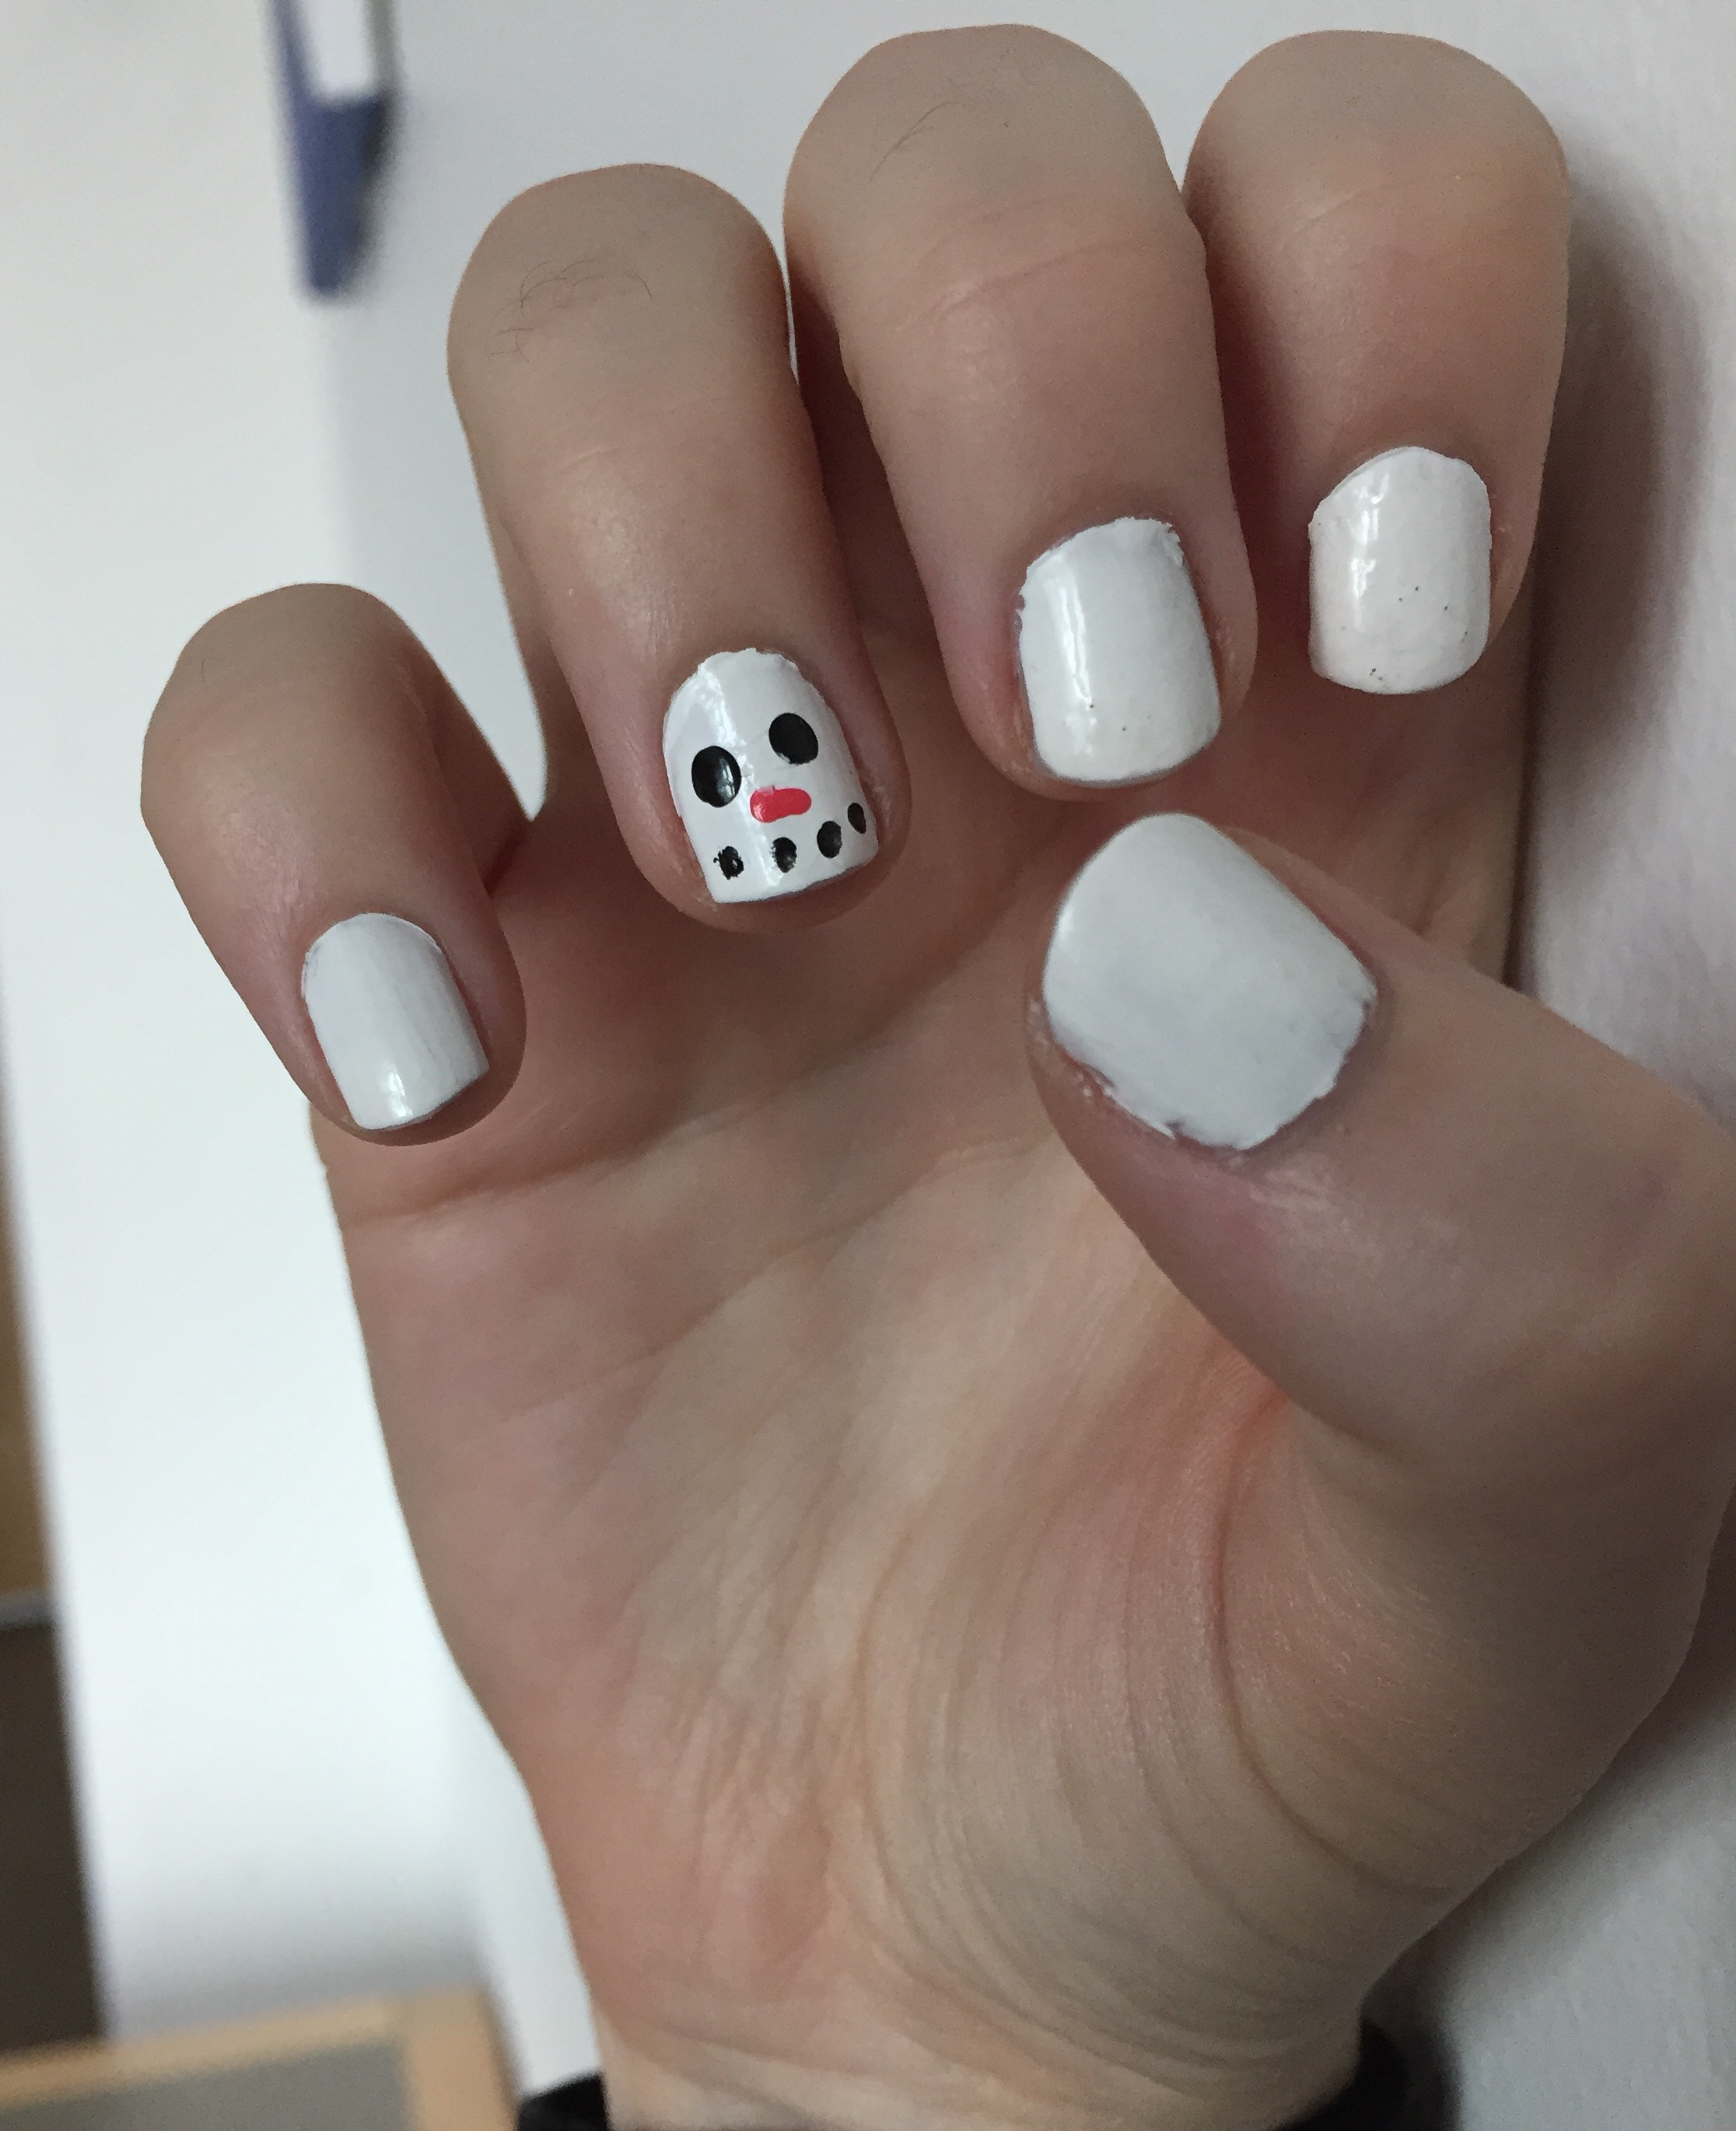 Winter Nail Art - No Repeats or Hesitations